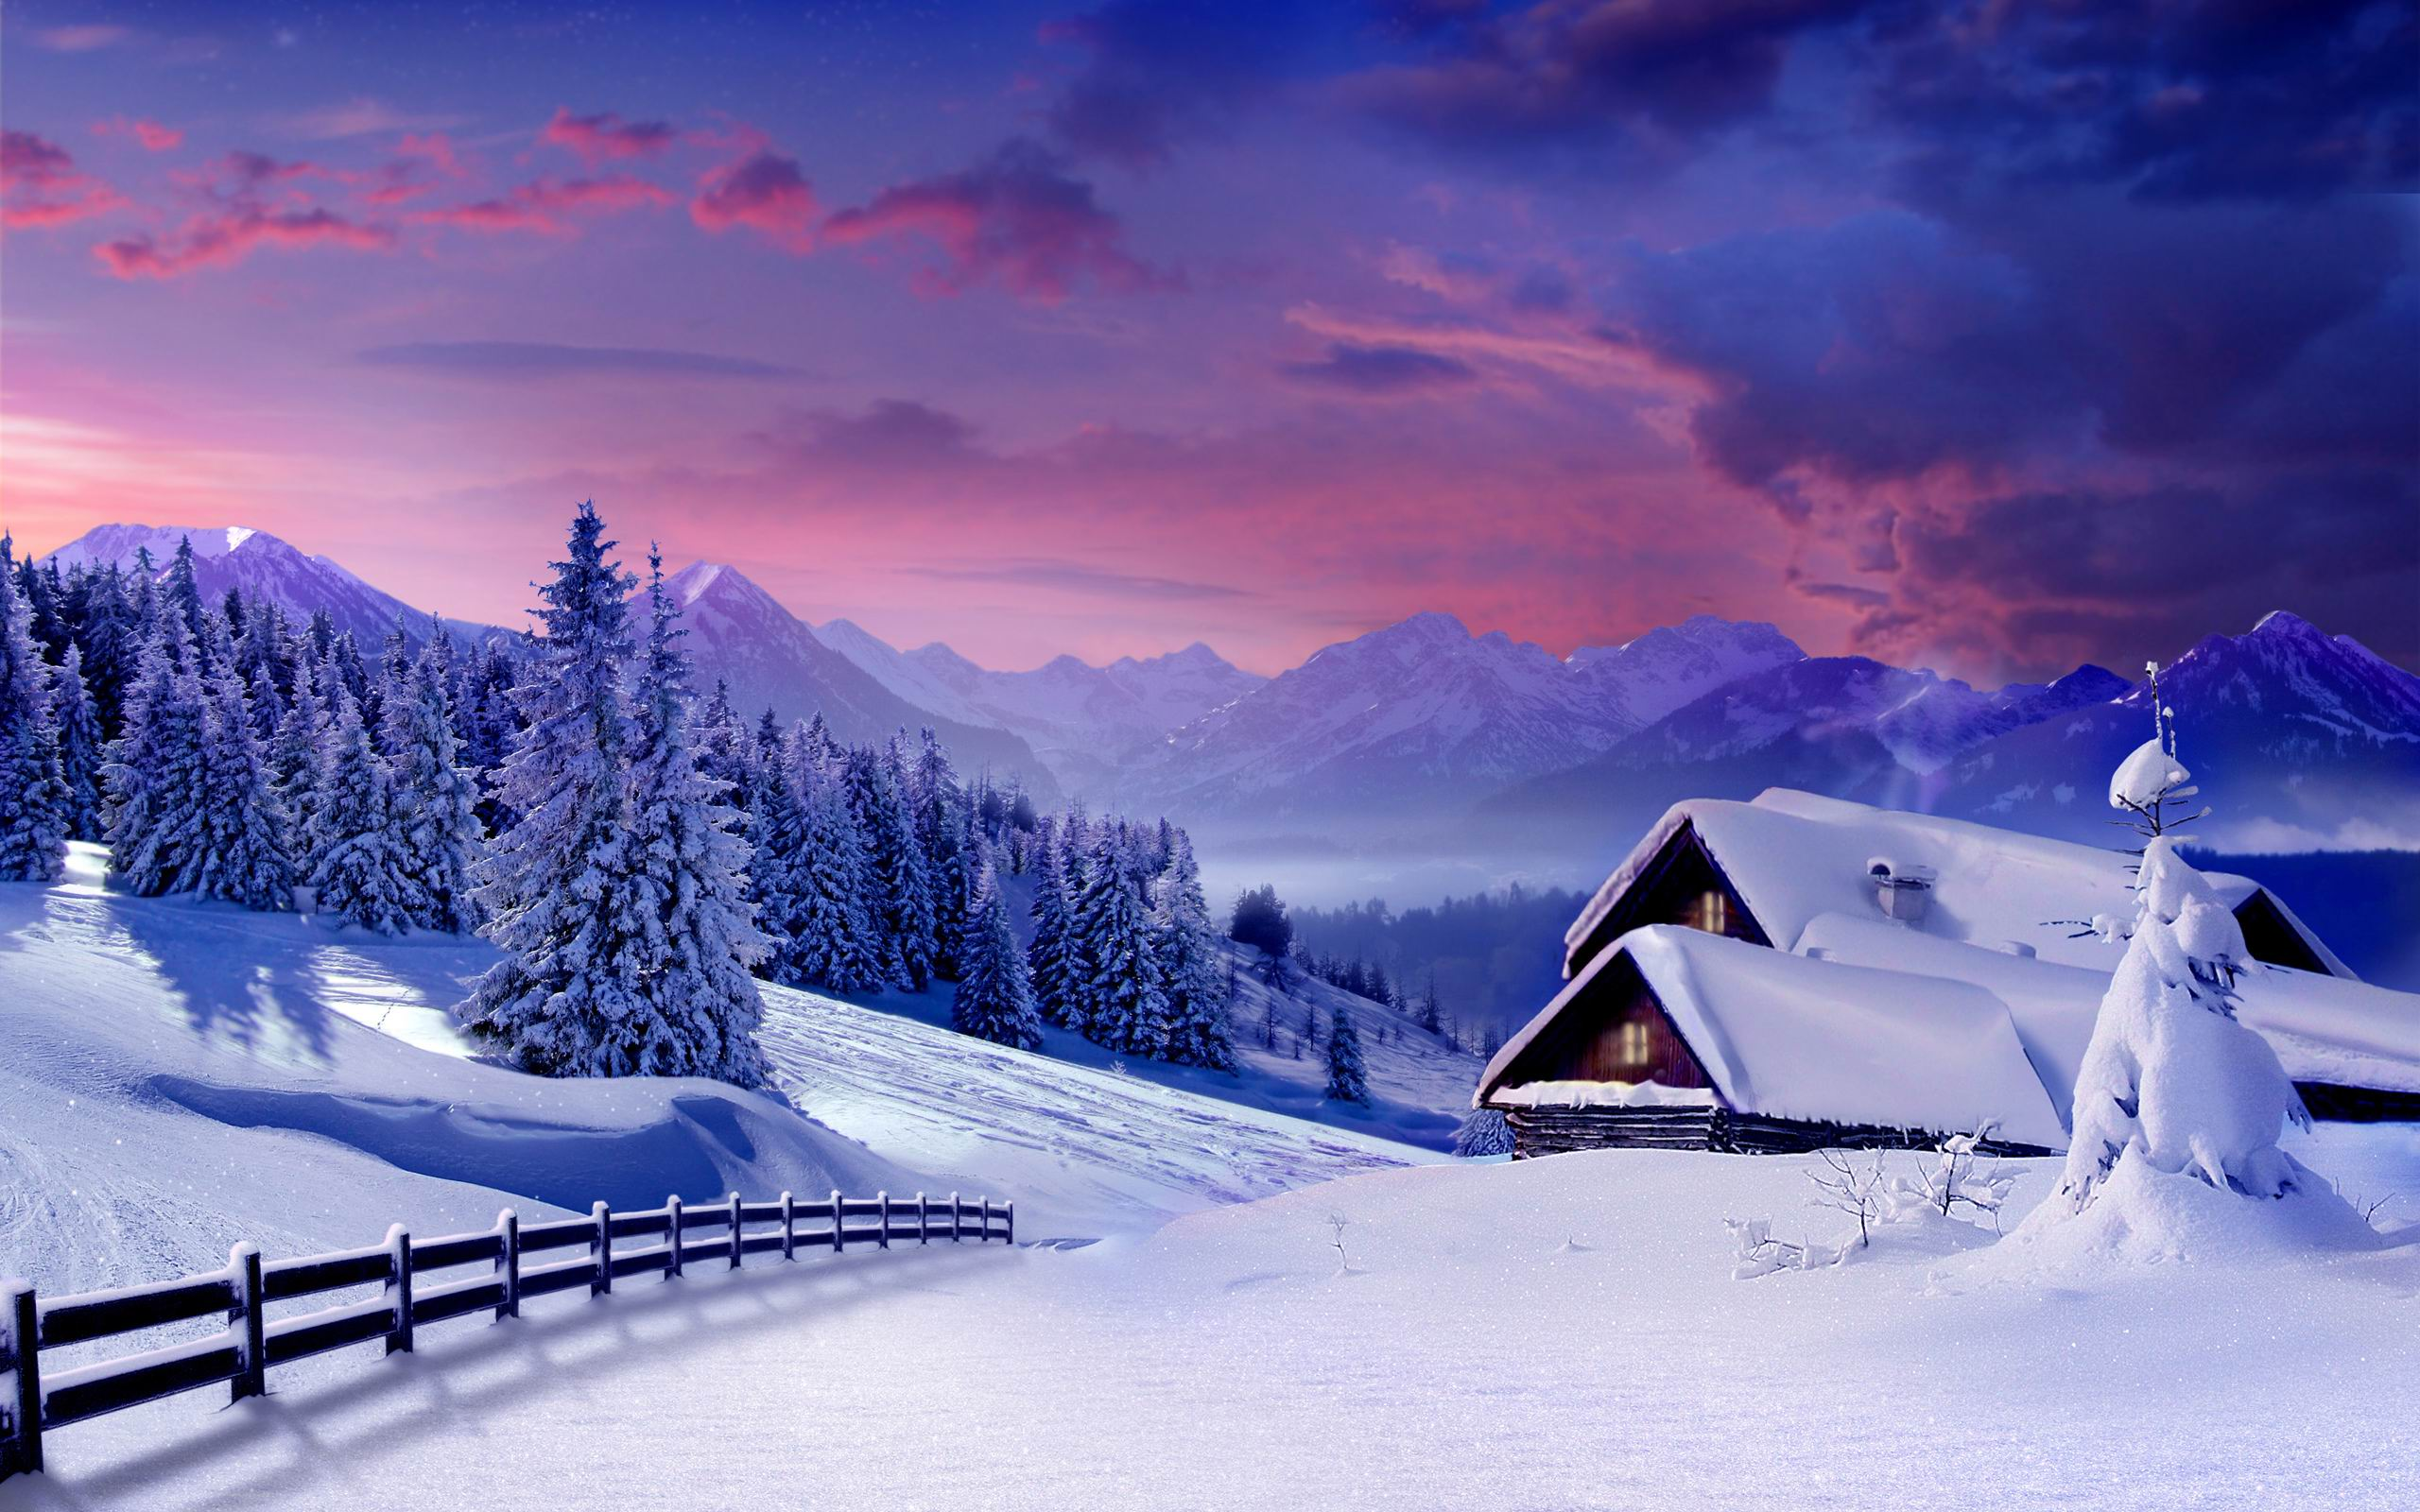 Winter Holiday Images  Pixabay  Download Free Pictures